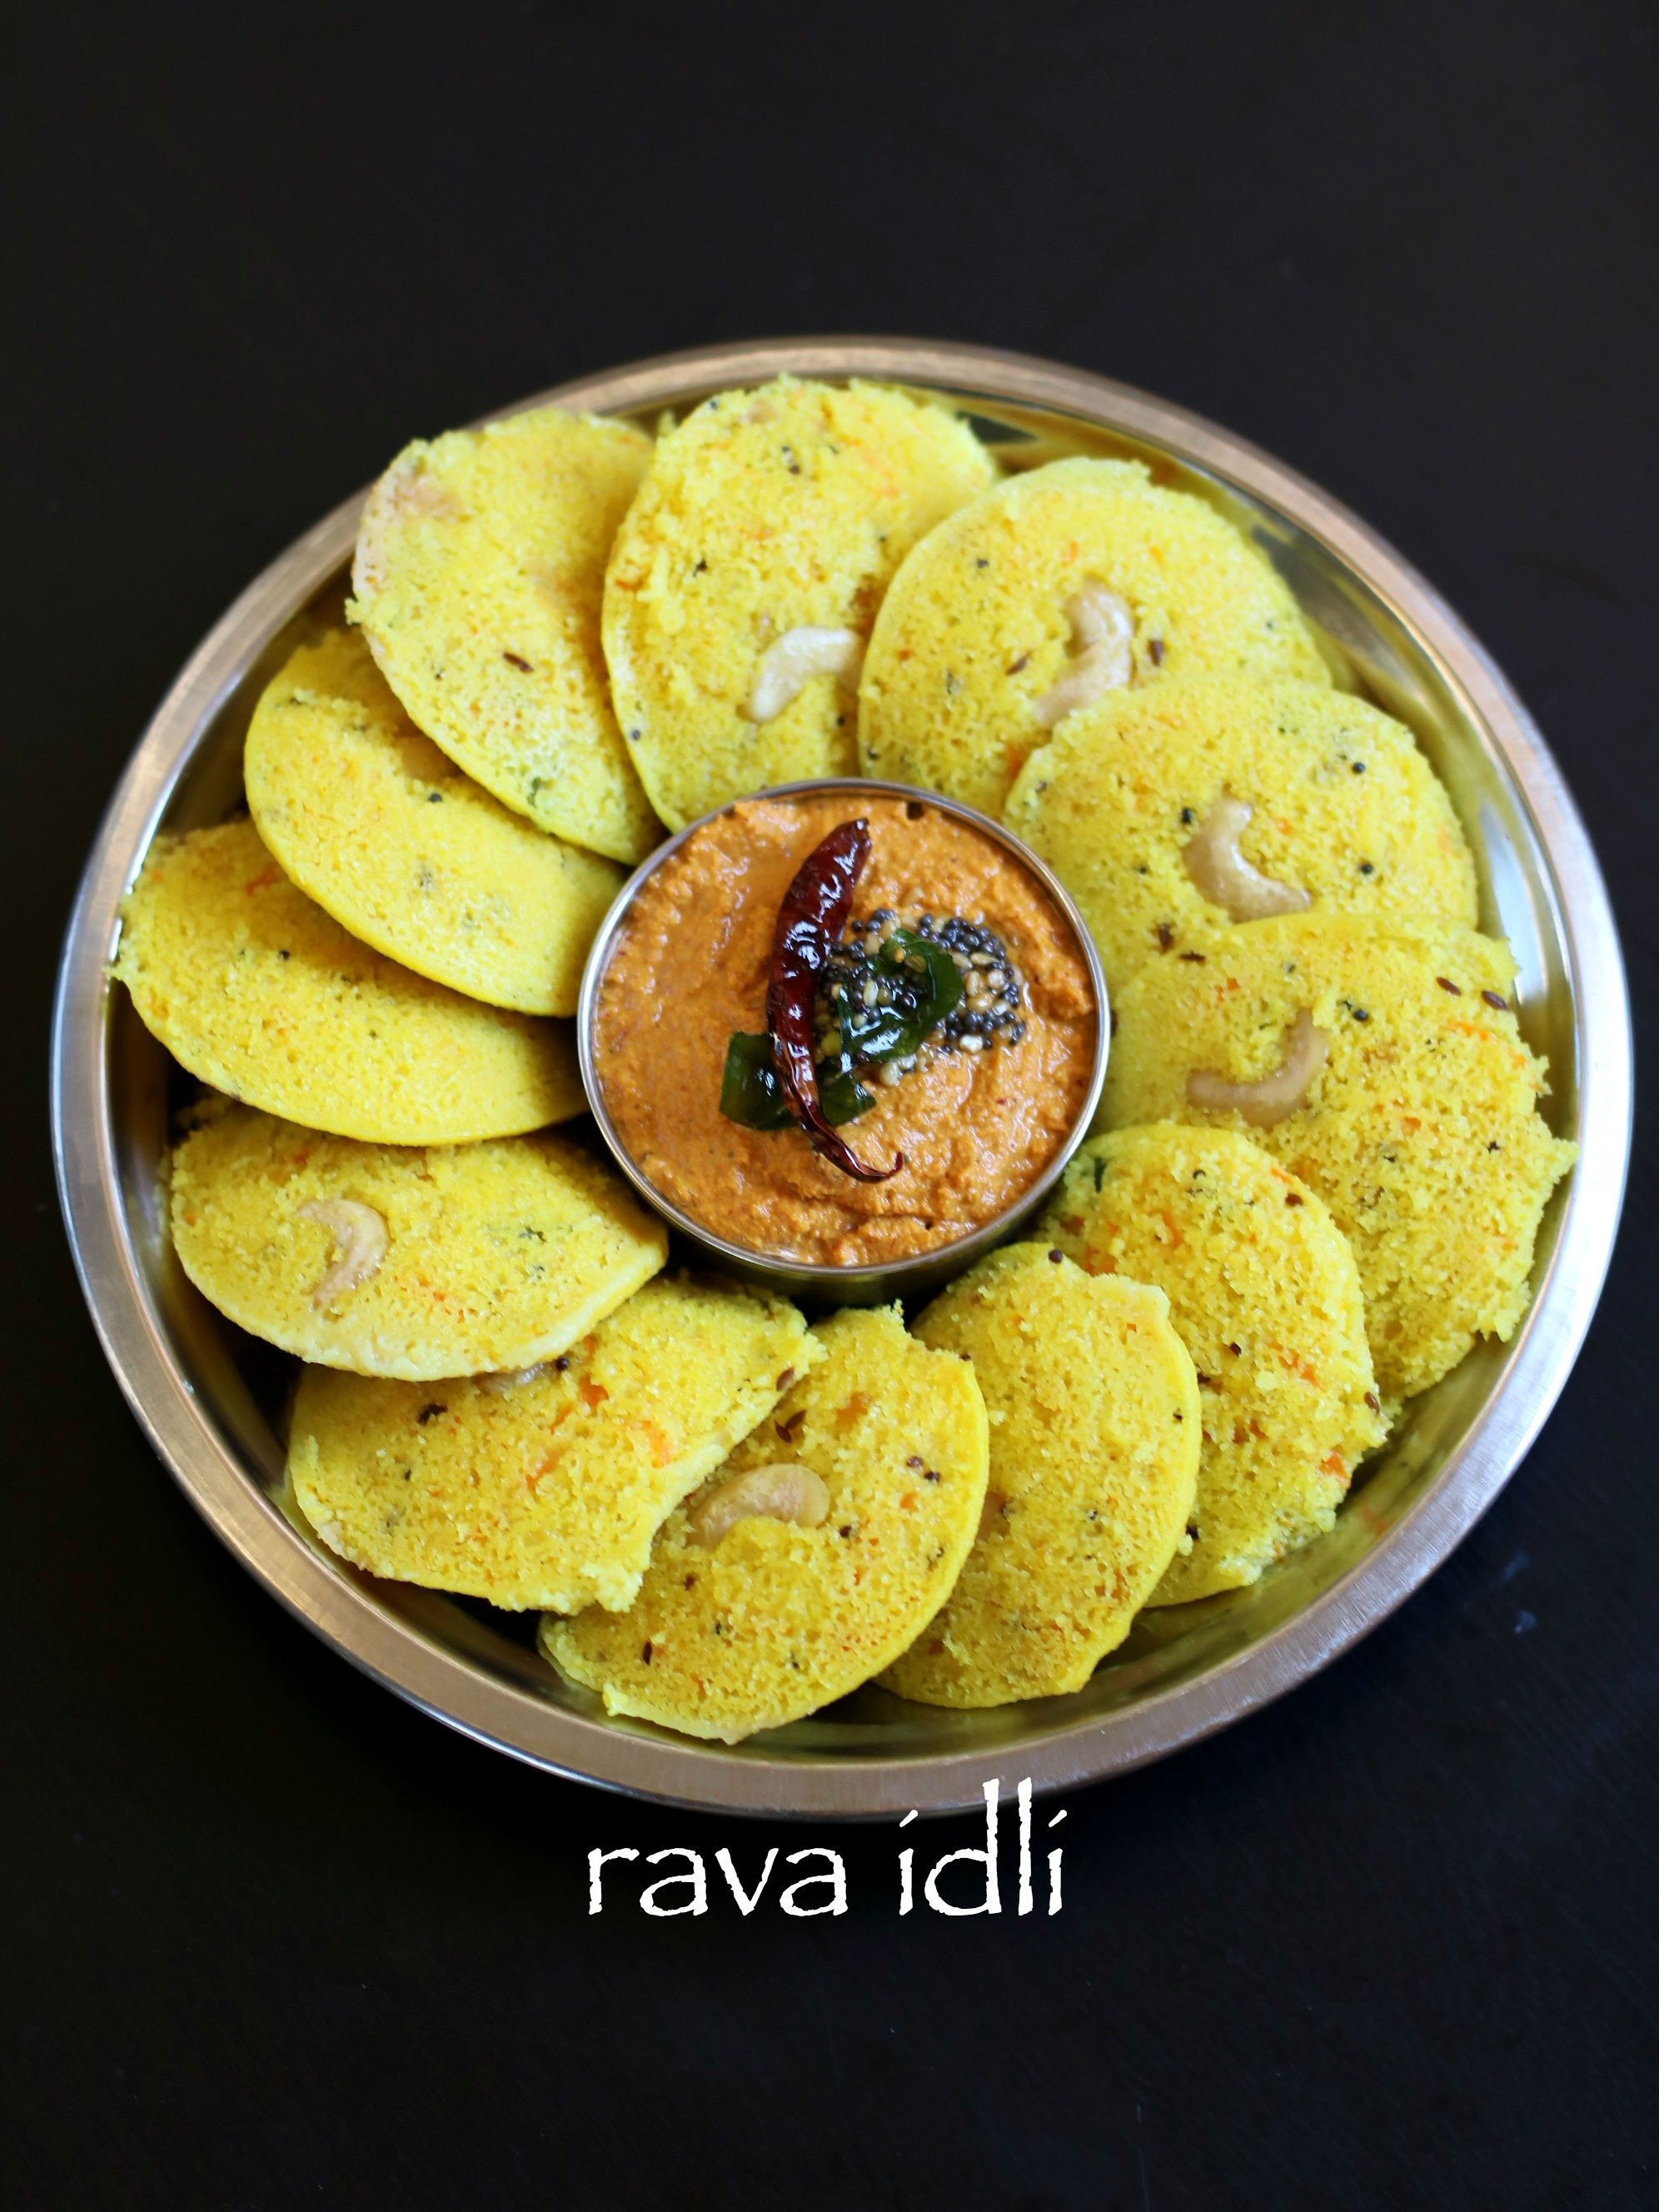 Rava idli recipe instant masala idli recipe carrot rava idli rava idli or instant rava idli recipe masala idli recipe carrot rava idli with step by step photovideo recipe rava idli is famous idli in south india forumfinder Image collections